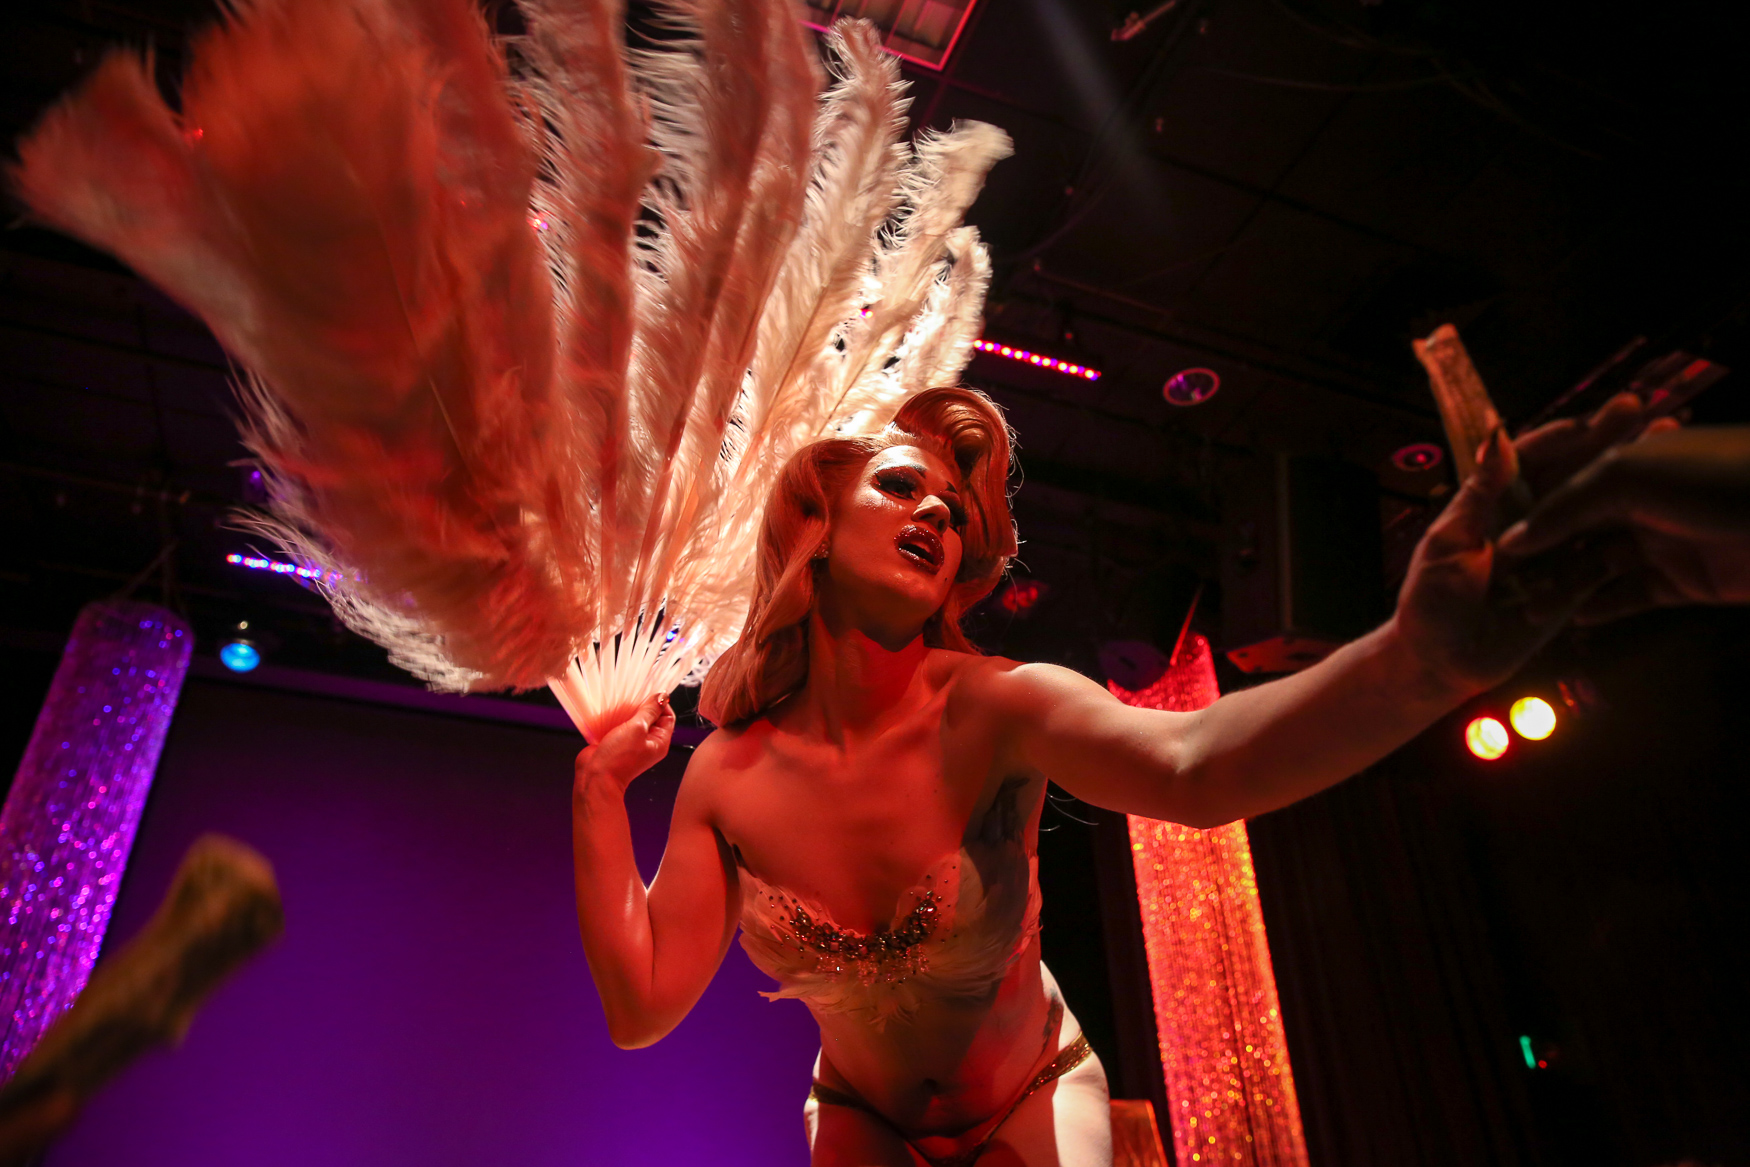 Betty-Oh-Hell-No takes her tips at the annual Baltimore Drag Awards in October.{ }(Amanda Andrade-Rhoades/DC Refined)